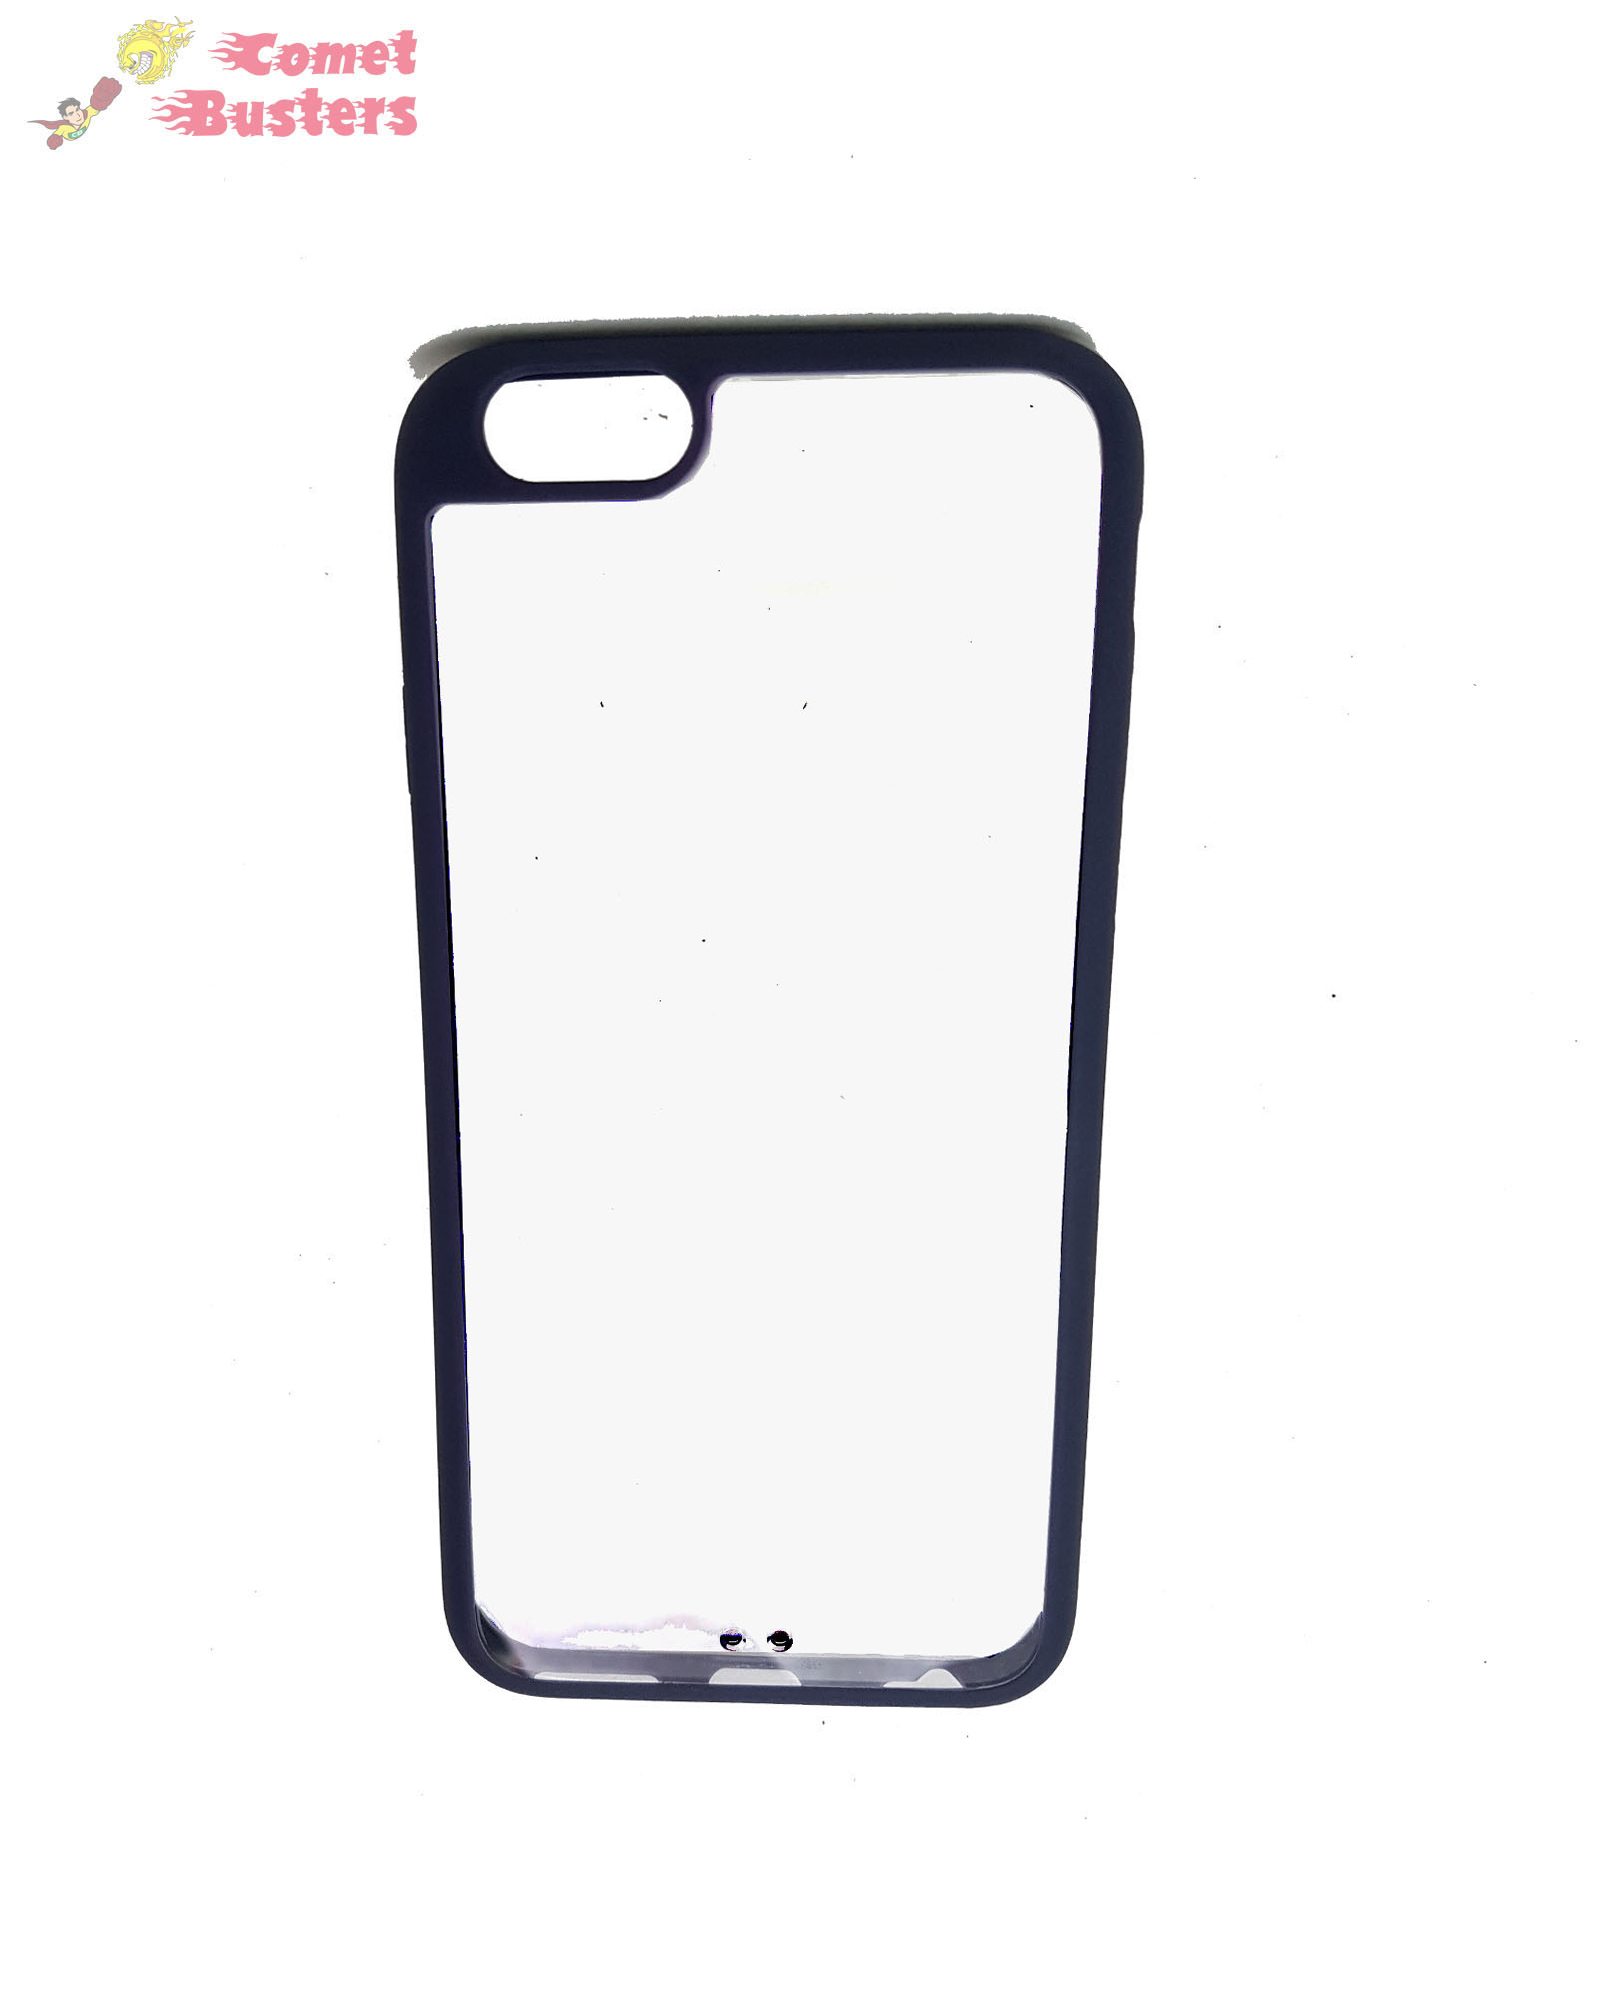 Apple iPhone 6S Back Cover Case | Black